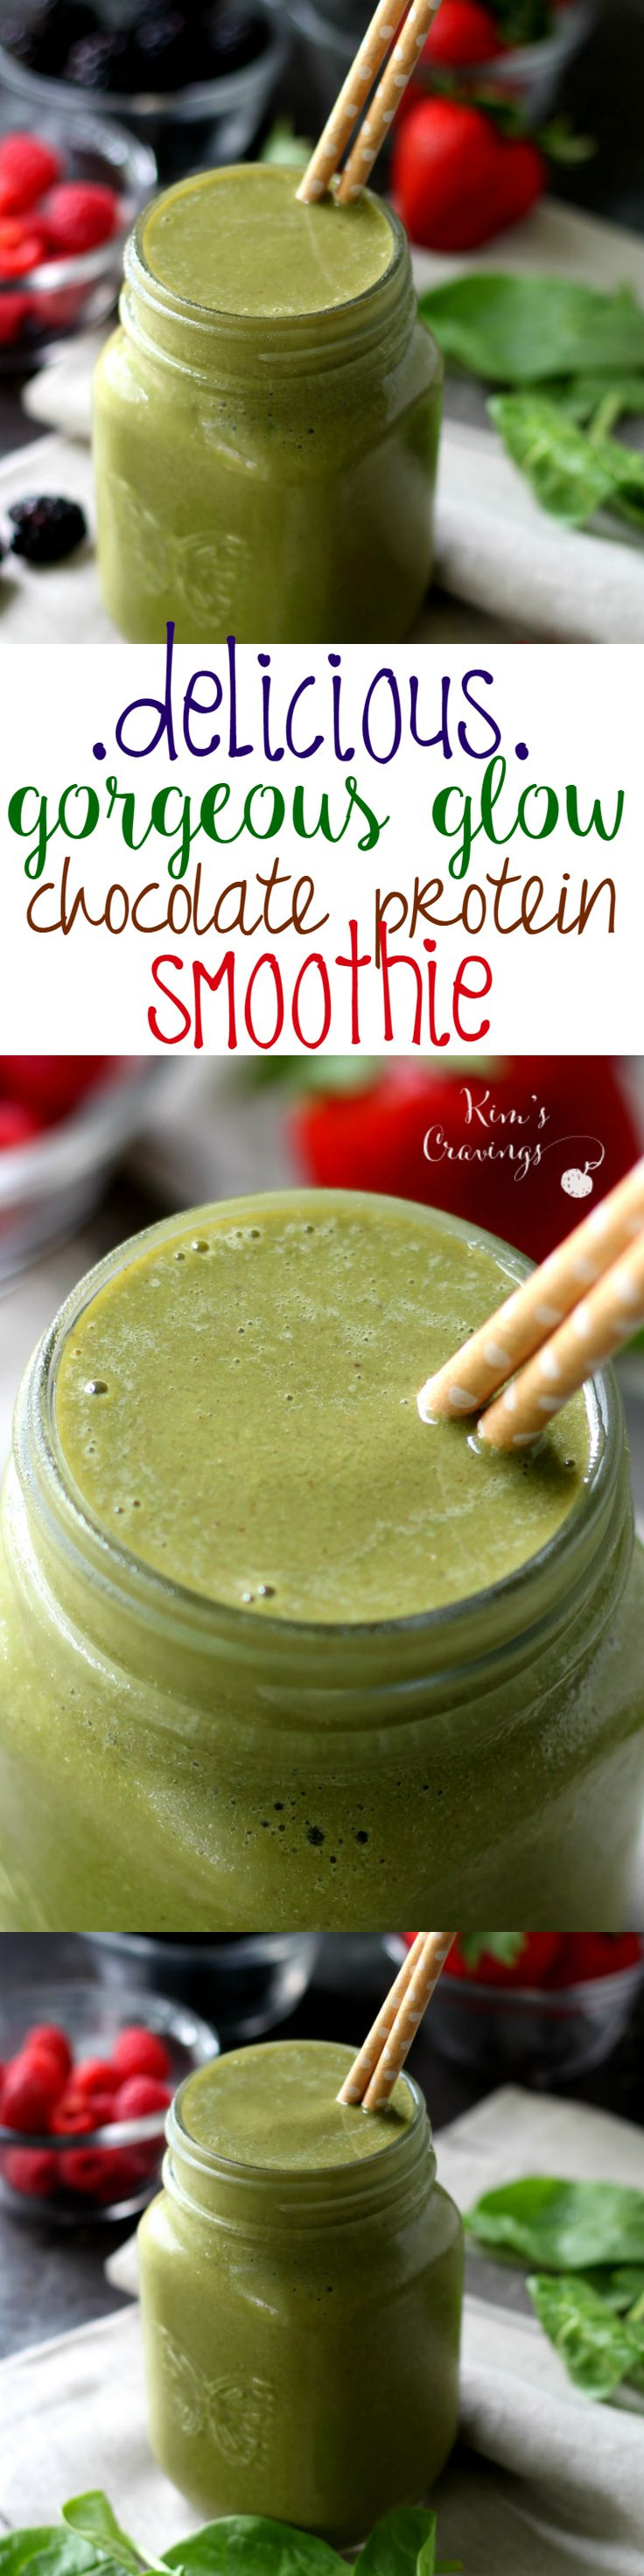 Gorgeous Glow Chocolate Protein Smoothie- a delicious blend of my favorite vegan, Non-GMO chocolate protein powder, unsweetened non-dairy milk, fresh baby spinach and naturally sweet frozen fruit- you'll be feeling the glow baby!